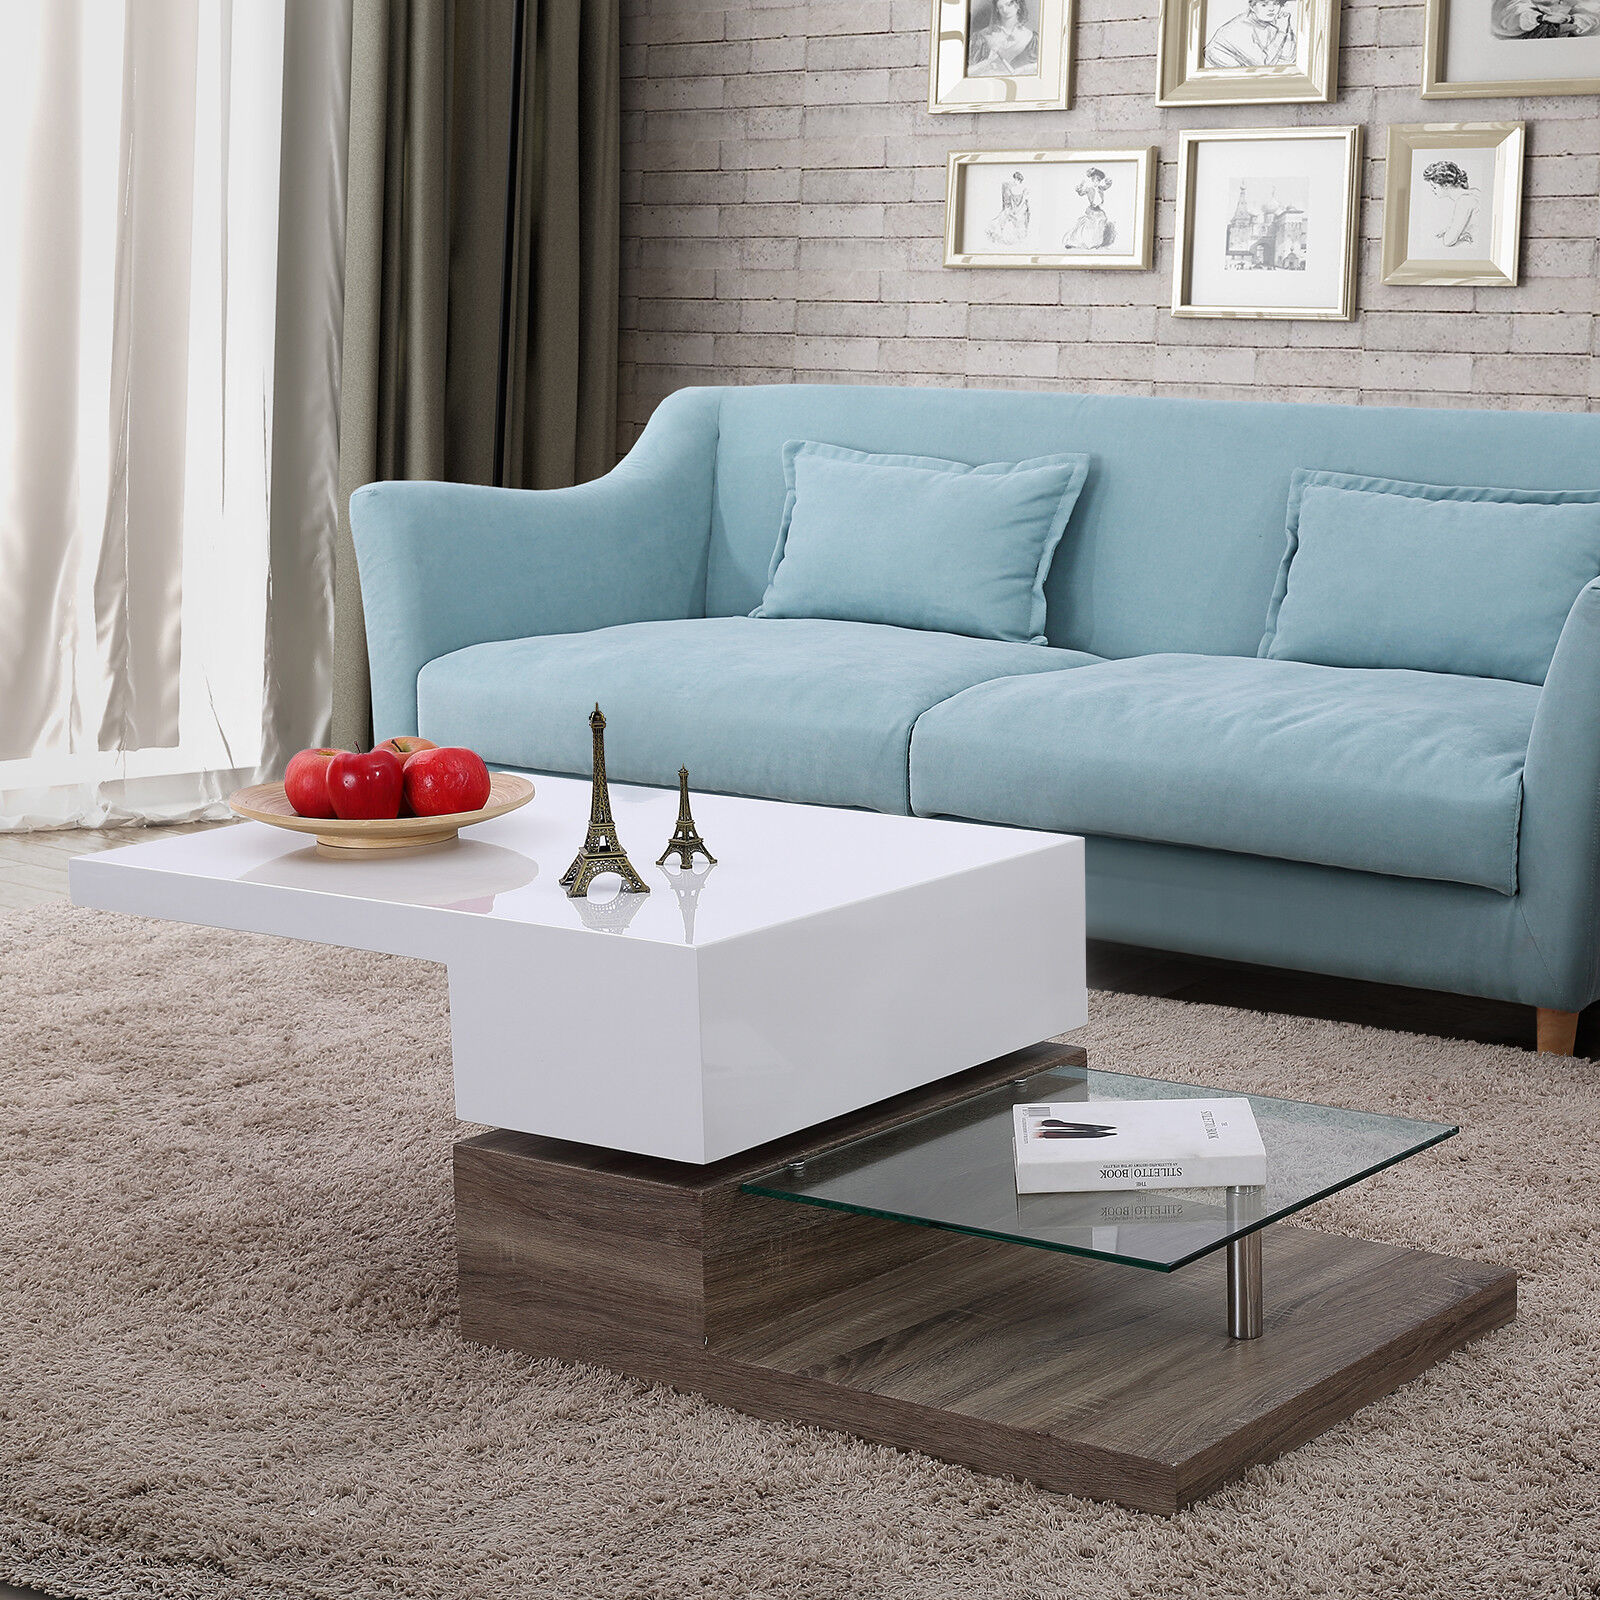 Details About 3 Layers High Gloss White Rotating Modern Coffee Table Living Room Furniture